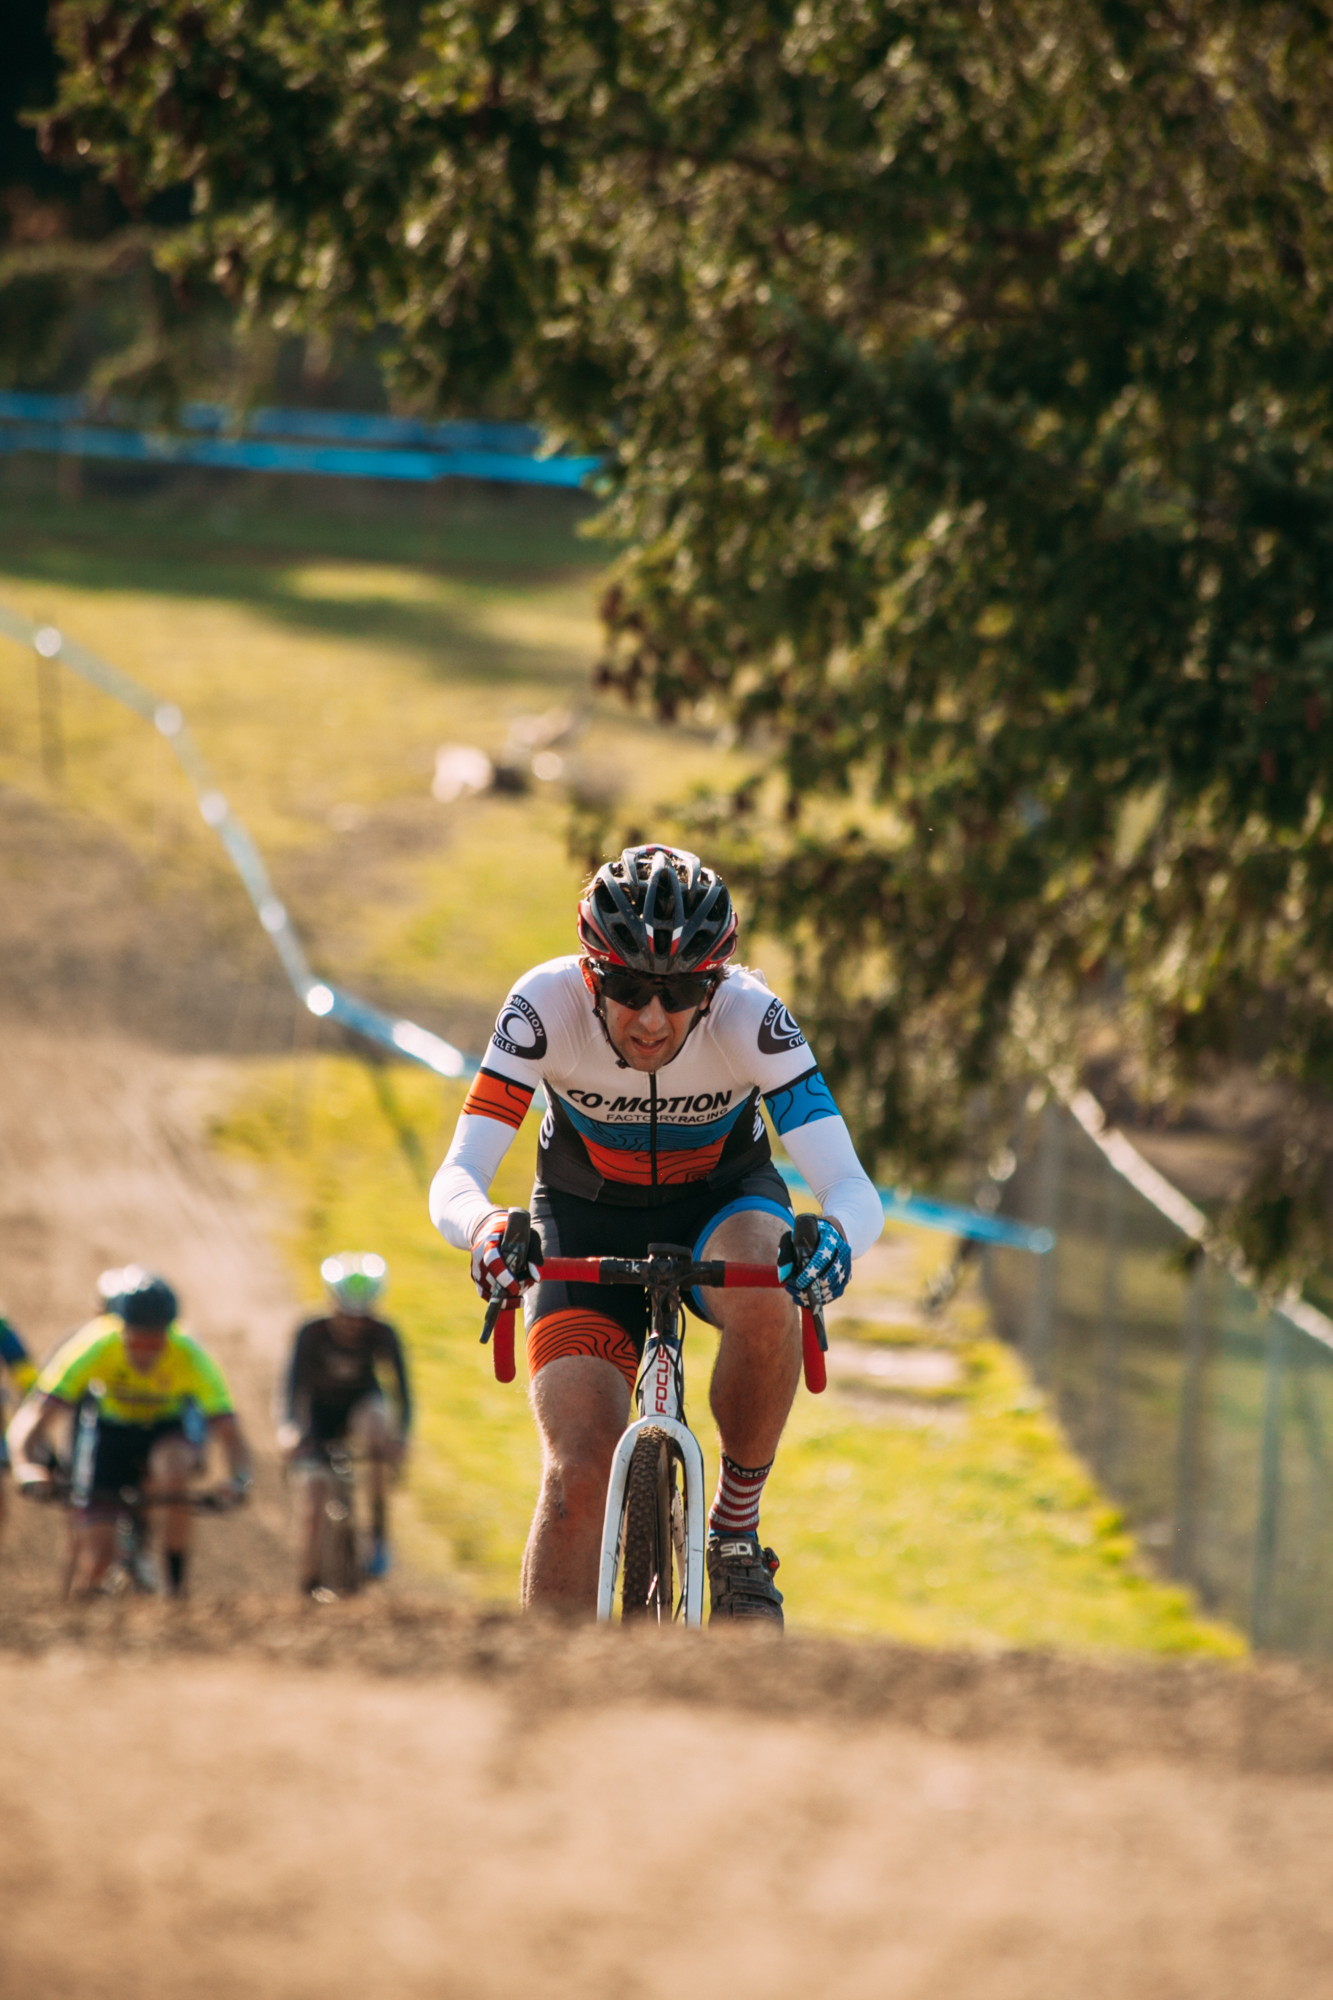 Cyclocross18_CCCX_RainierHS-207-mettlecycling.jpg